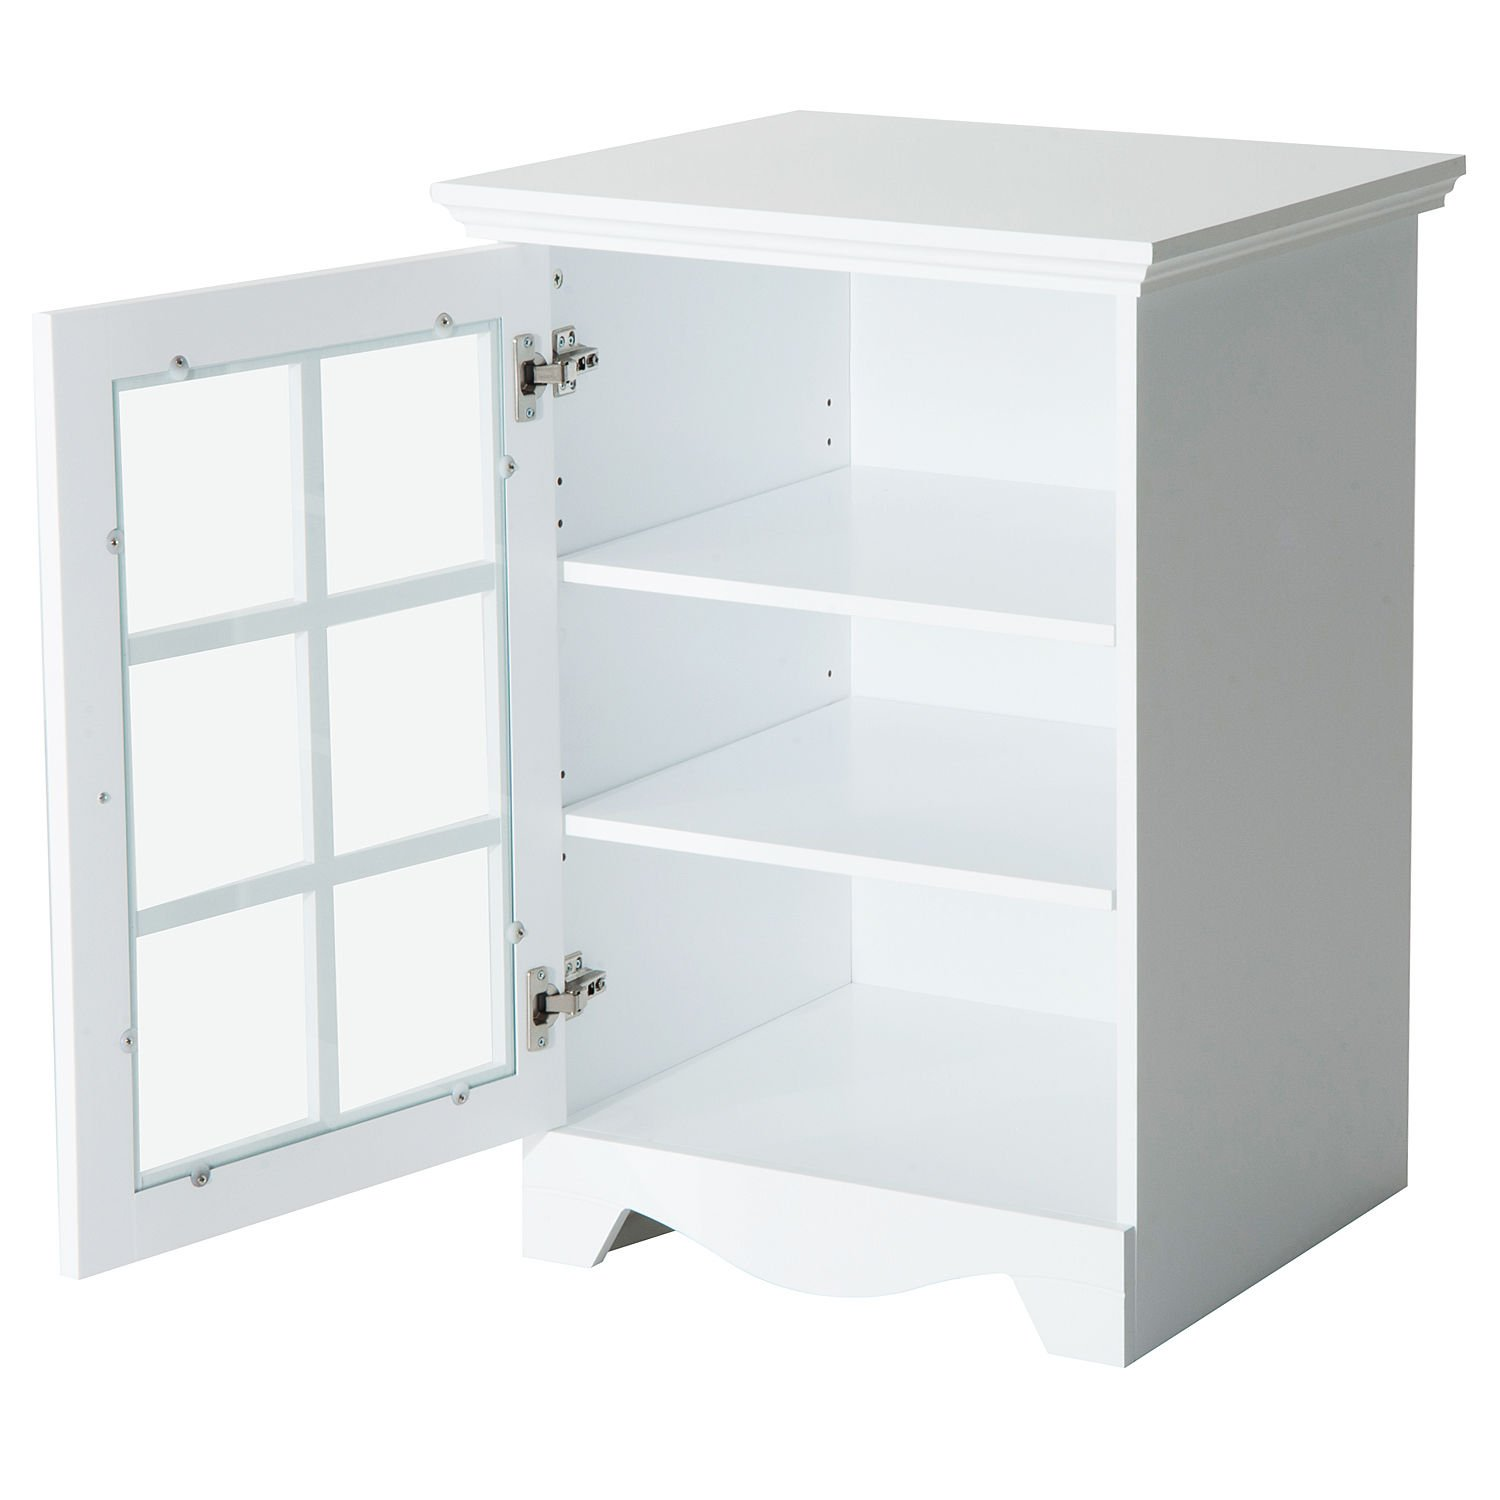 New White Wood Cabinet Storage Hutch Kitchen Bathroom Bedroom Single Glassed Door Shelves by totoshop (Image #5)